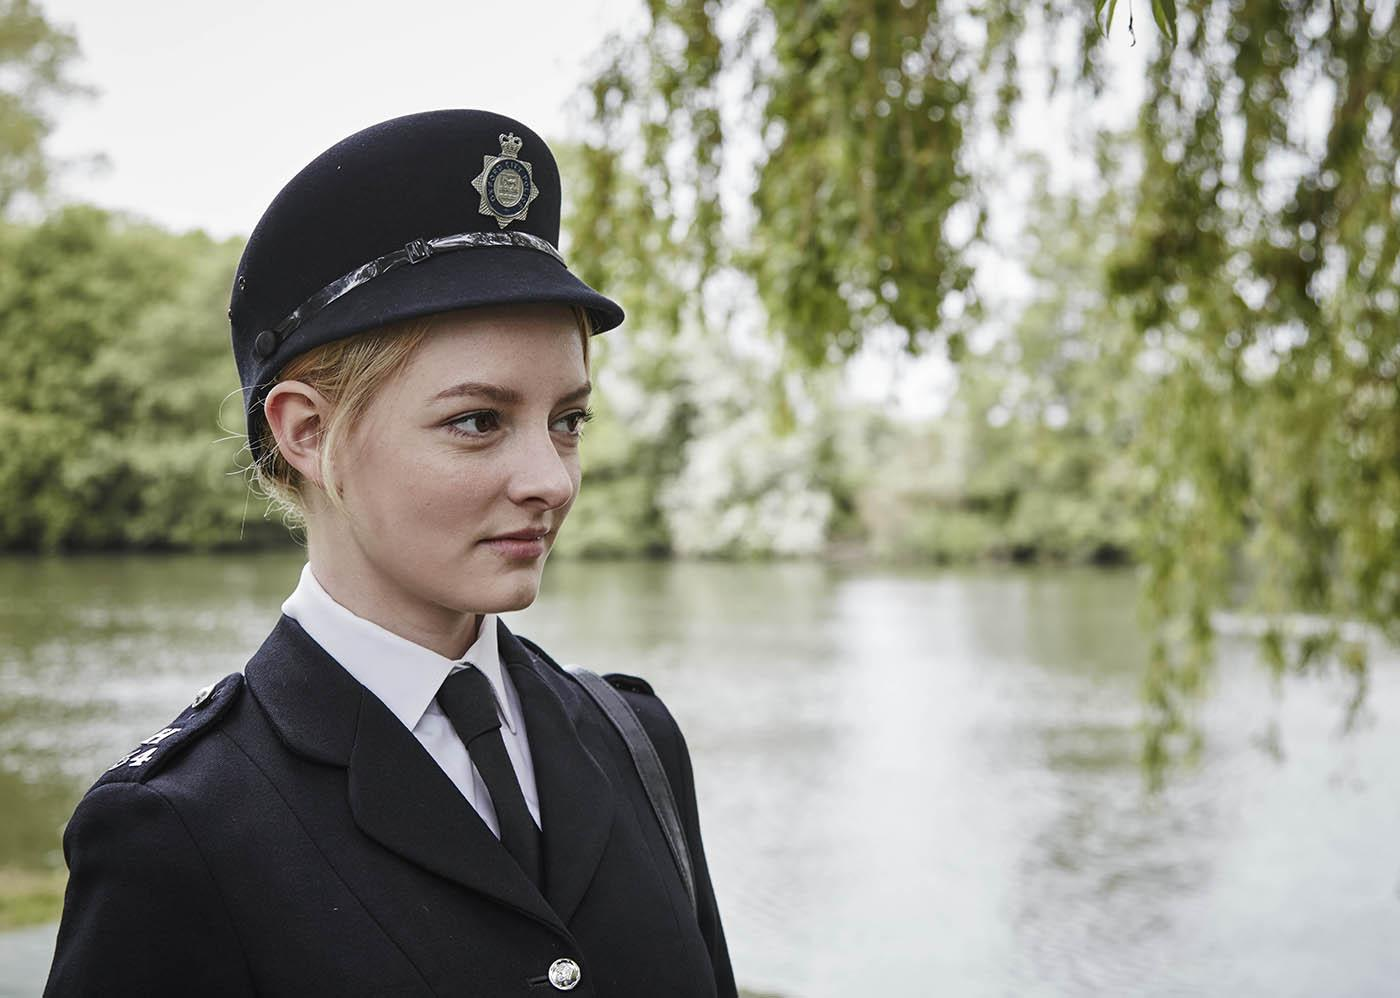 Shirley Trewlove in Endeavour. Photo: ITV Plc and Masterpiece